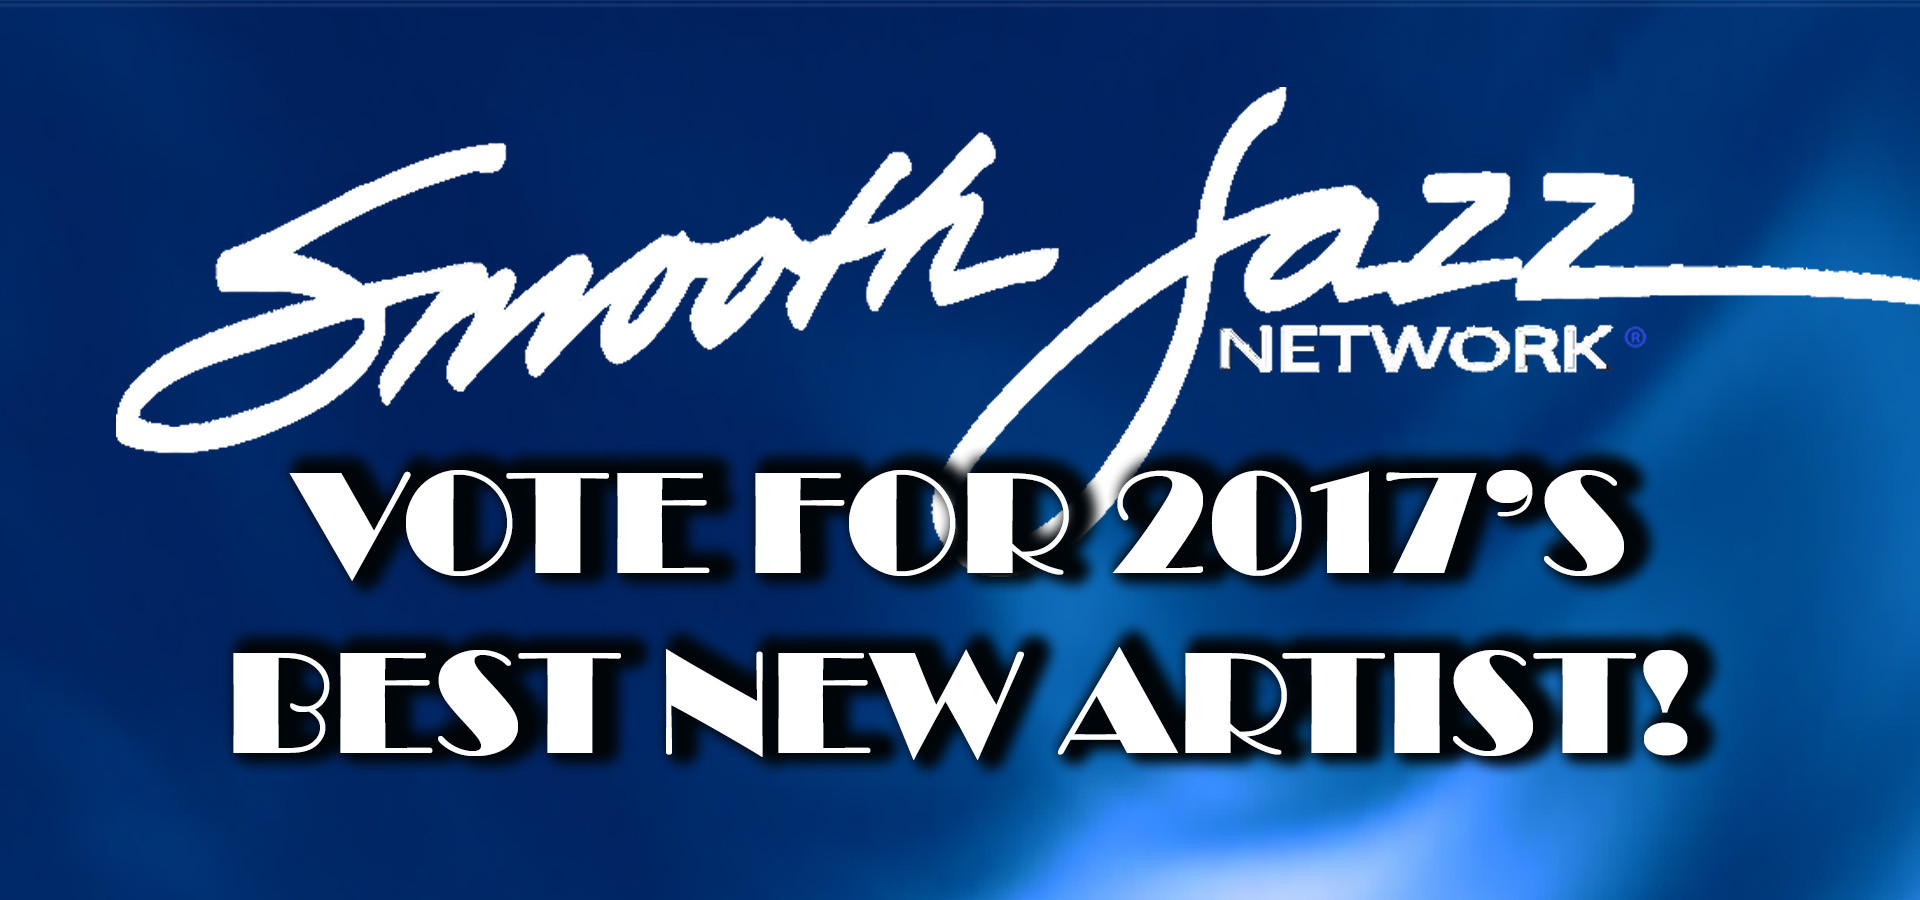 Smooth Jazz Network affiliates